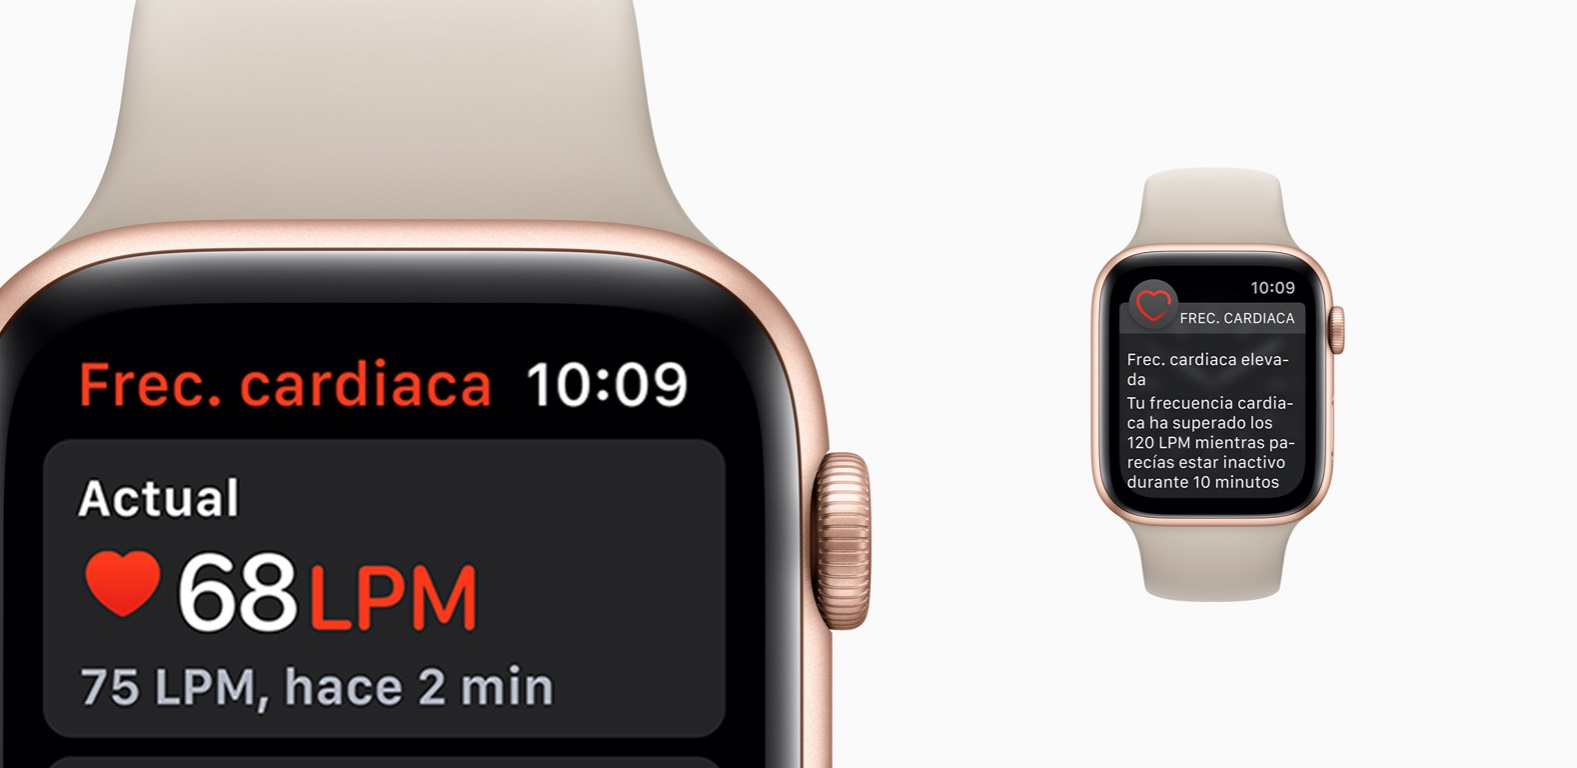 El Apple Watch Series 4 detecta con mayor precisión los problemas cardíacos en los usuarios